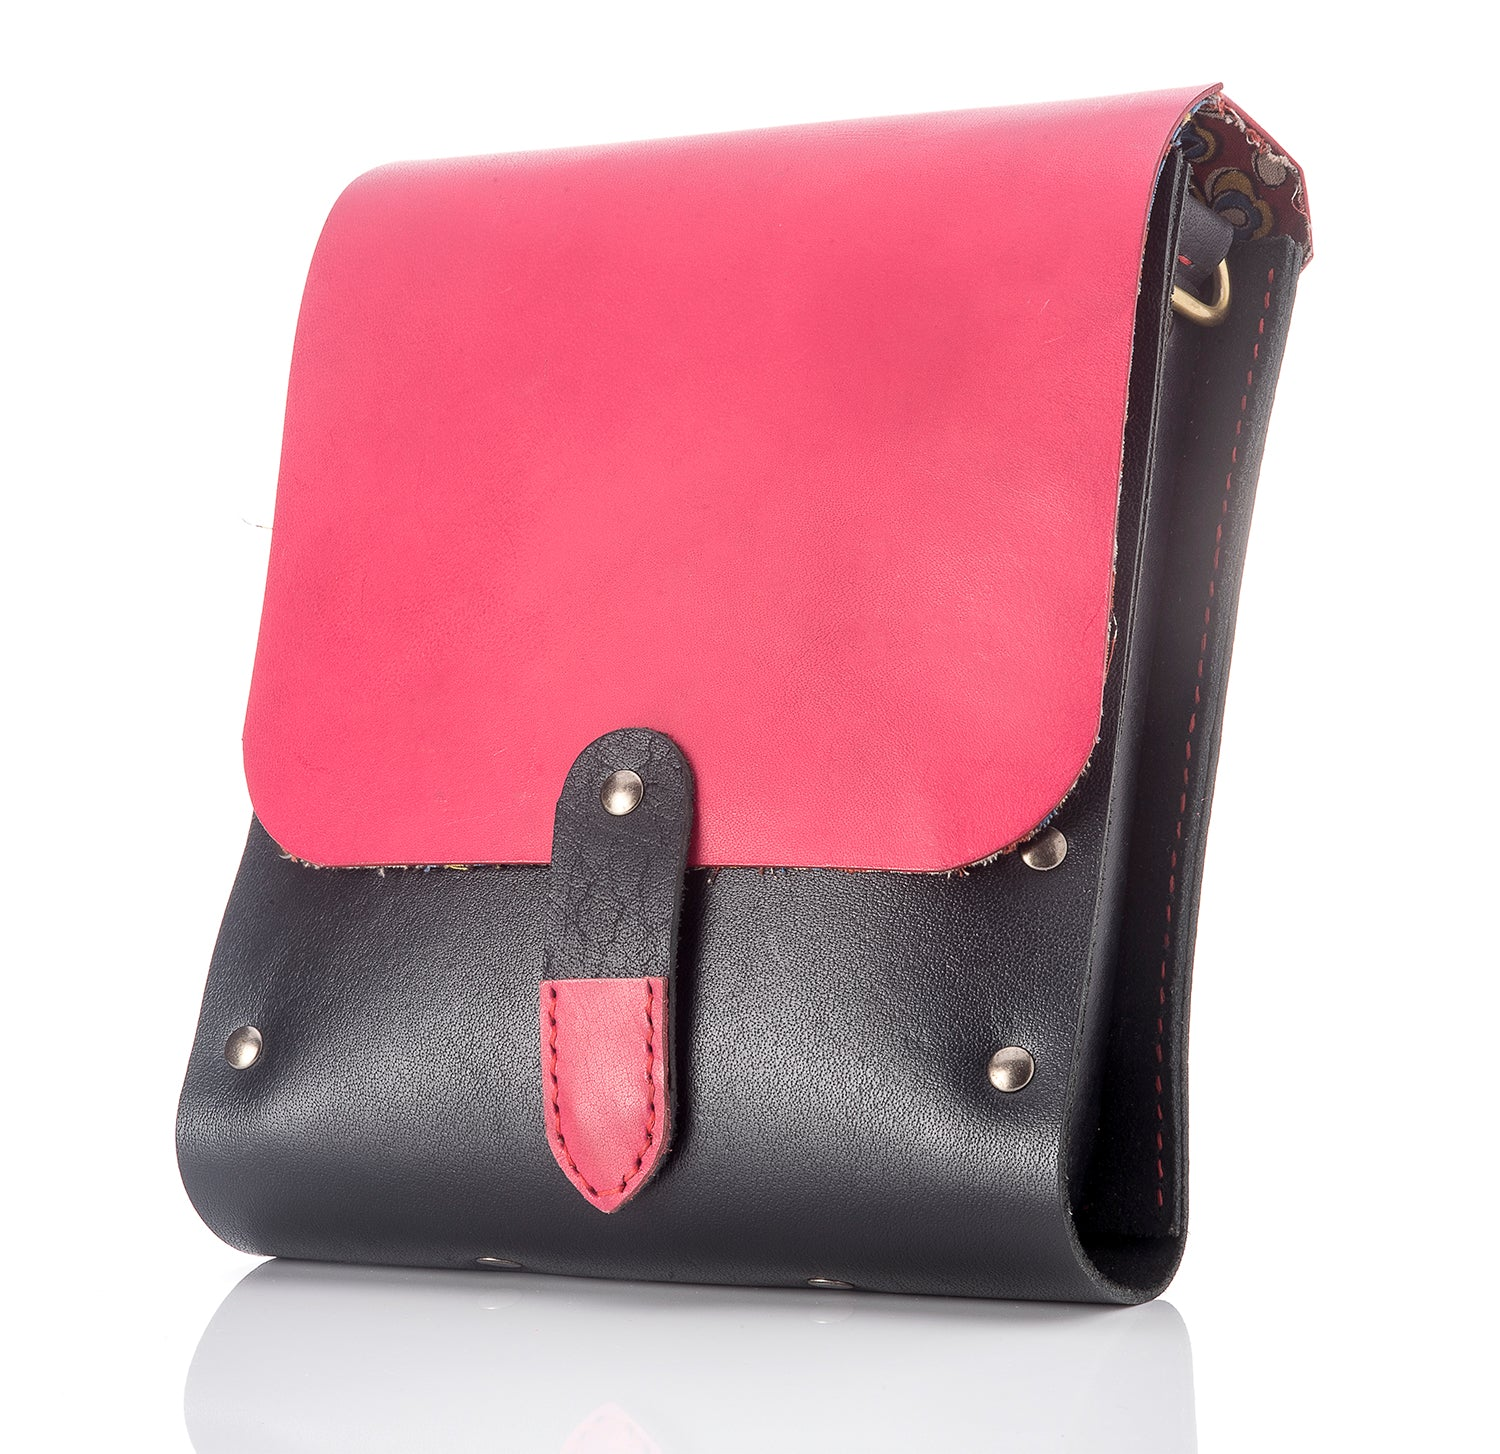 Biker Bag for Women Pink - Large - Two Horns